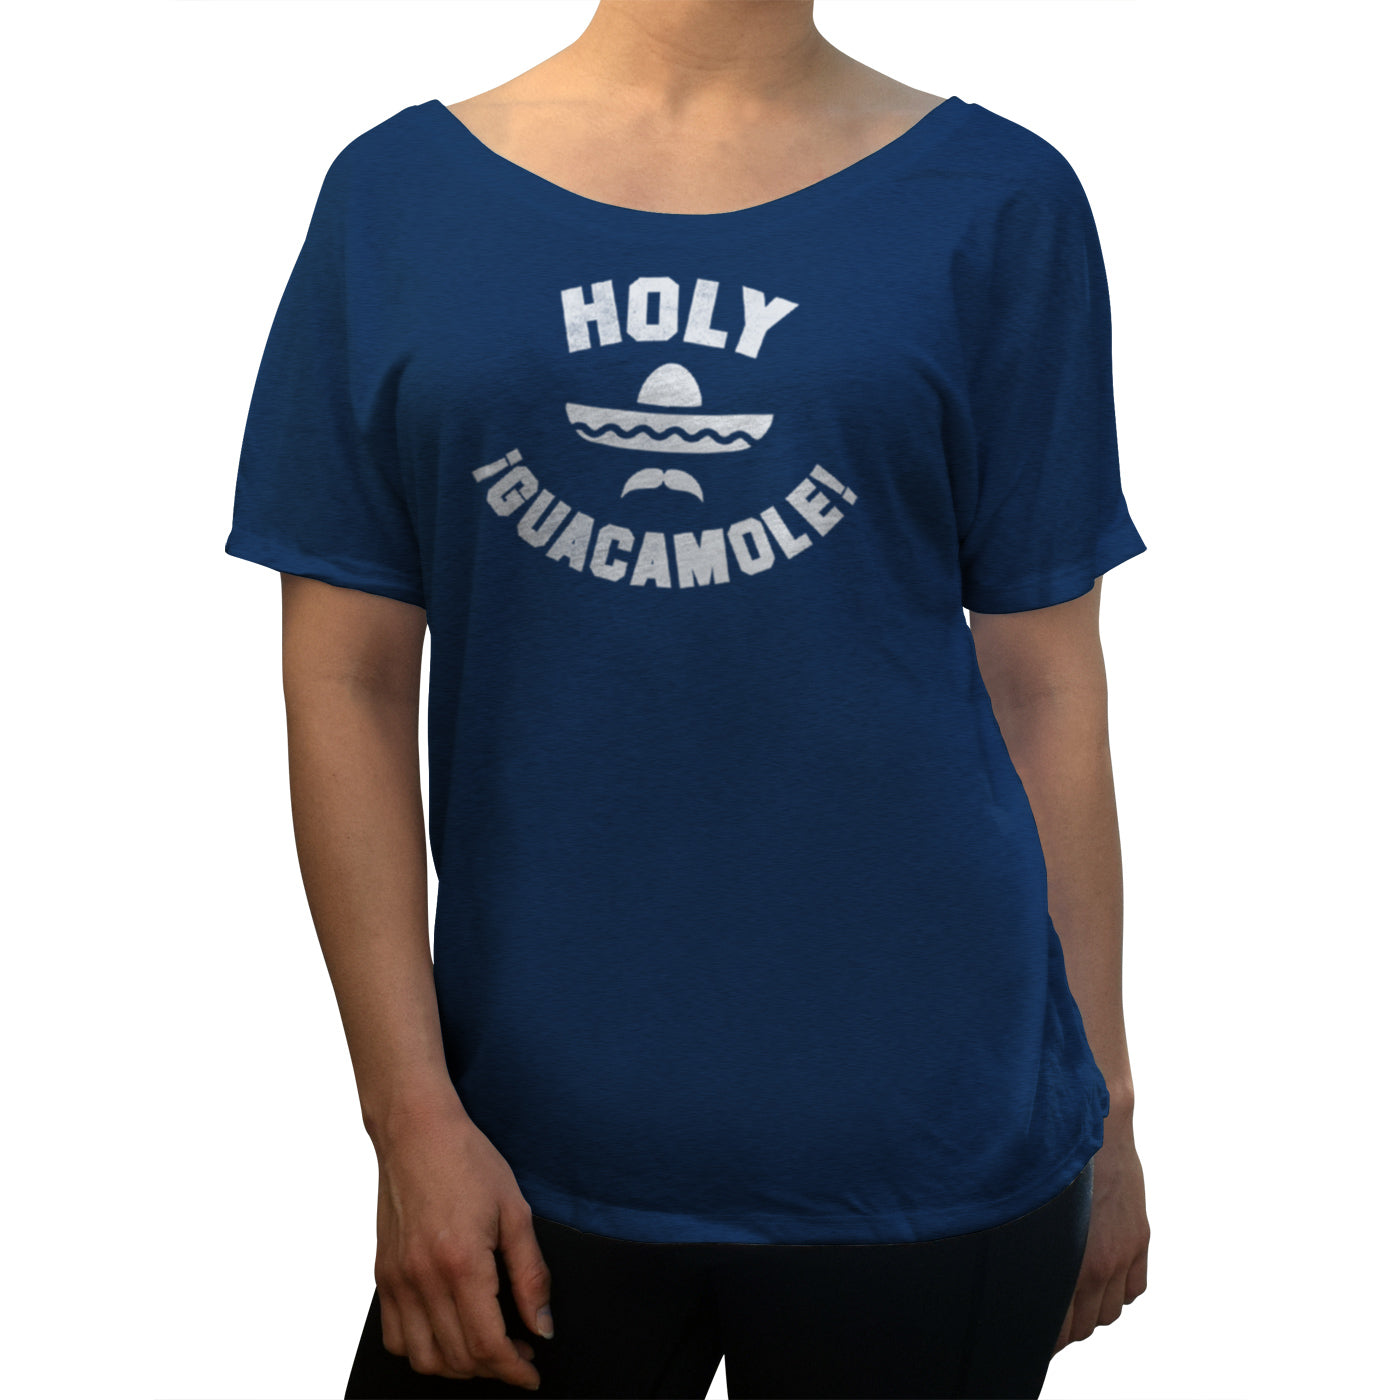 Women's Holy Guacamole Scoop Neck T-Shirt